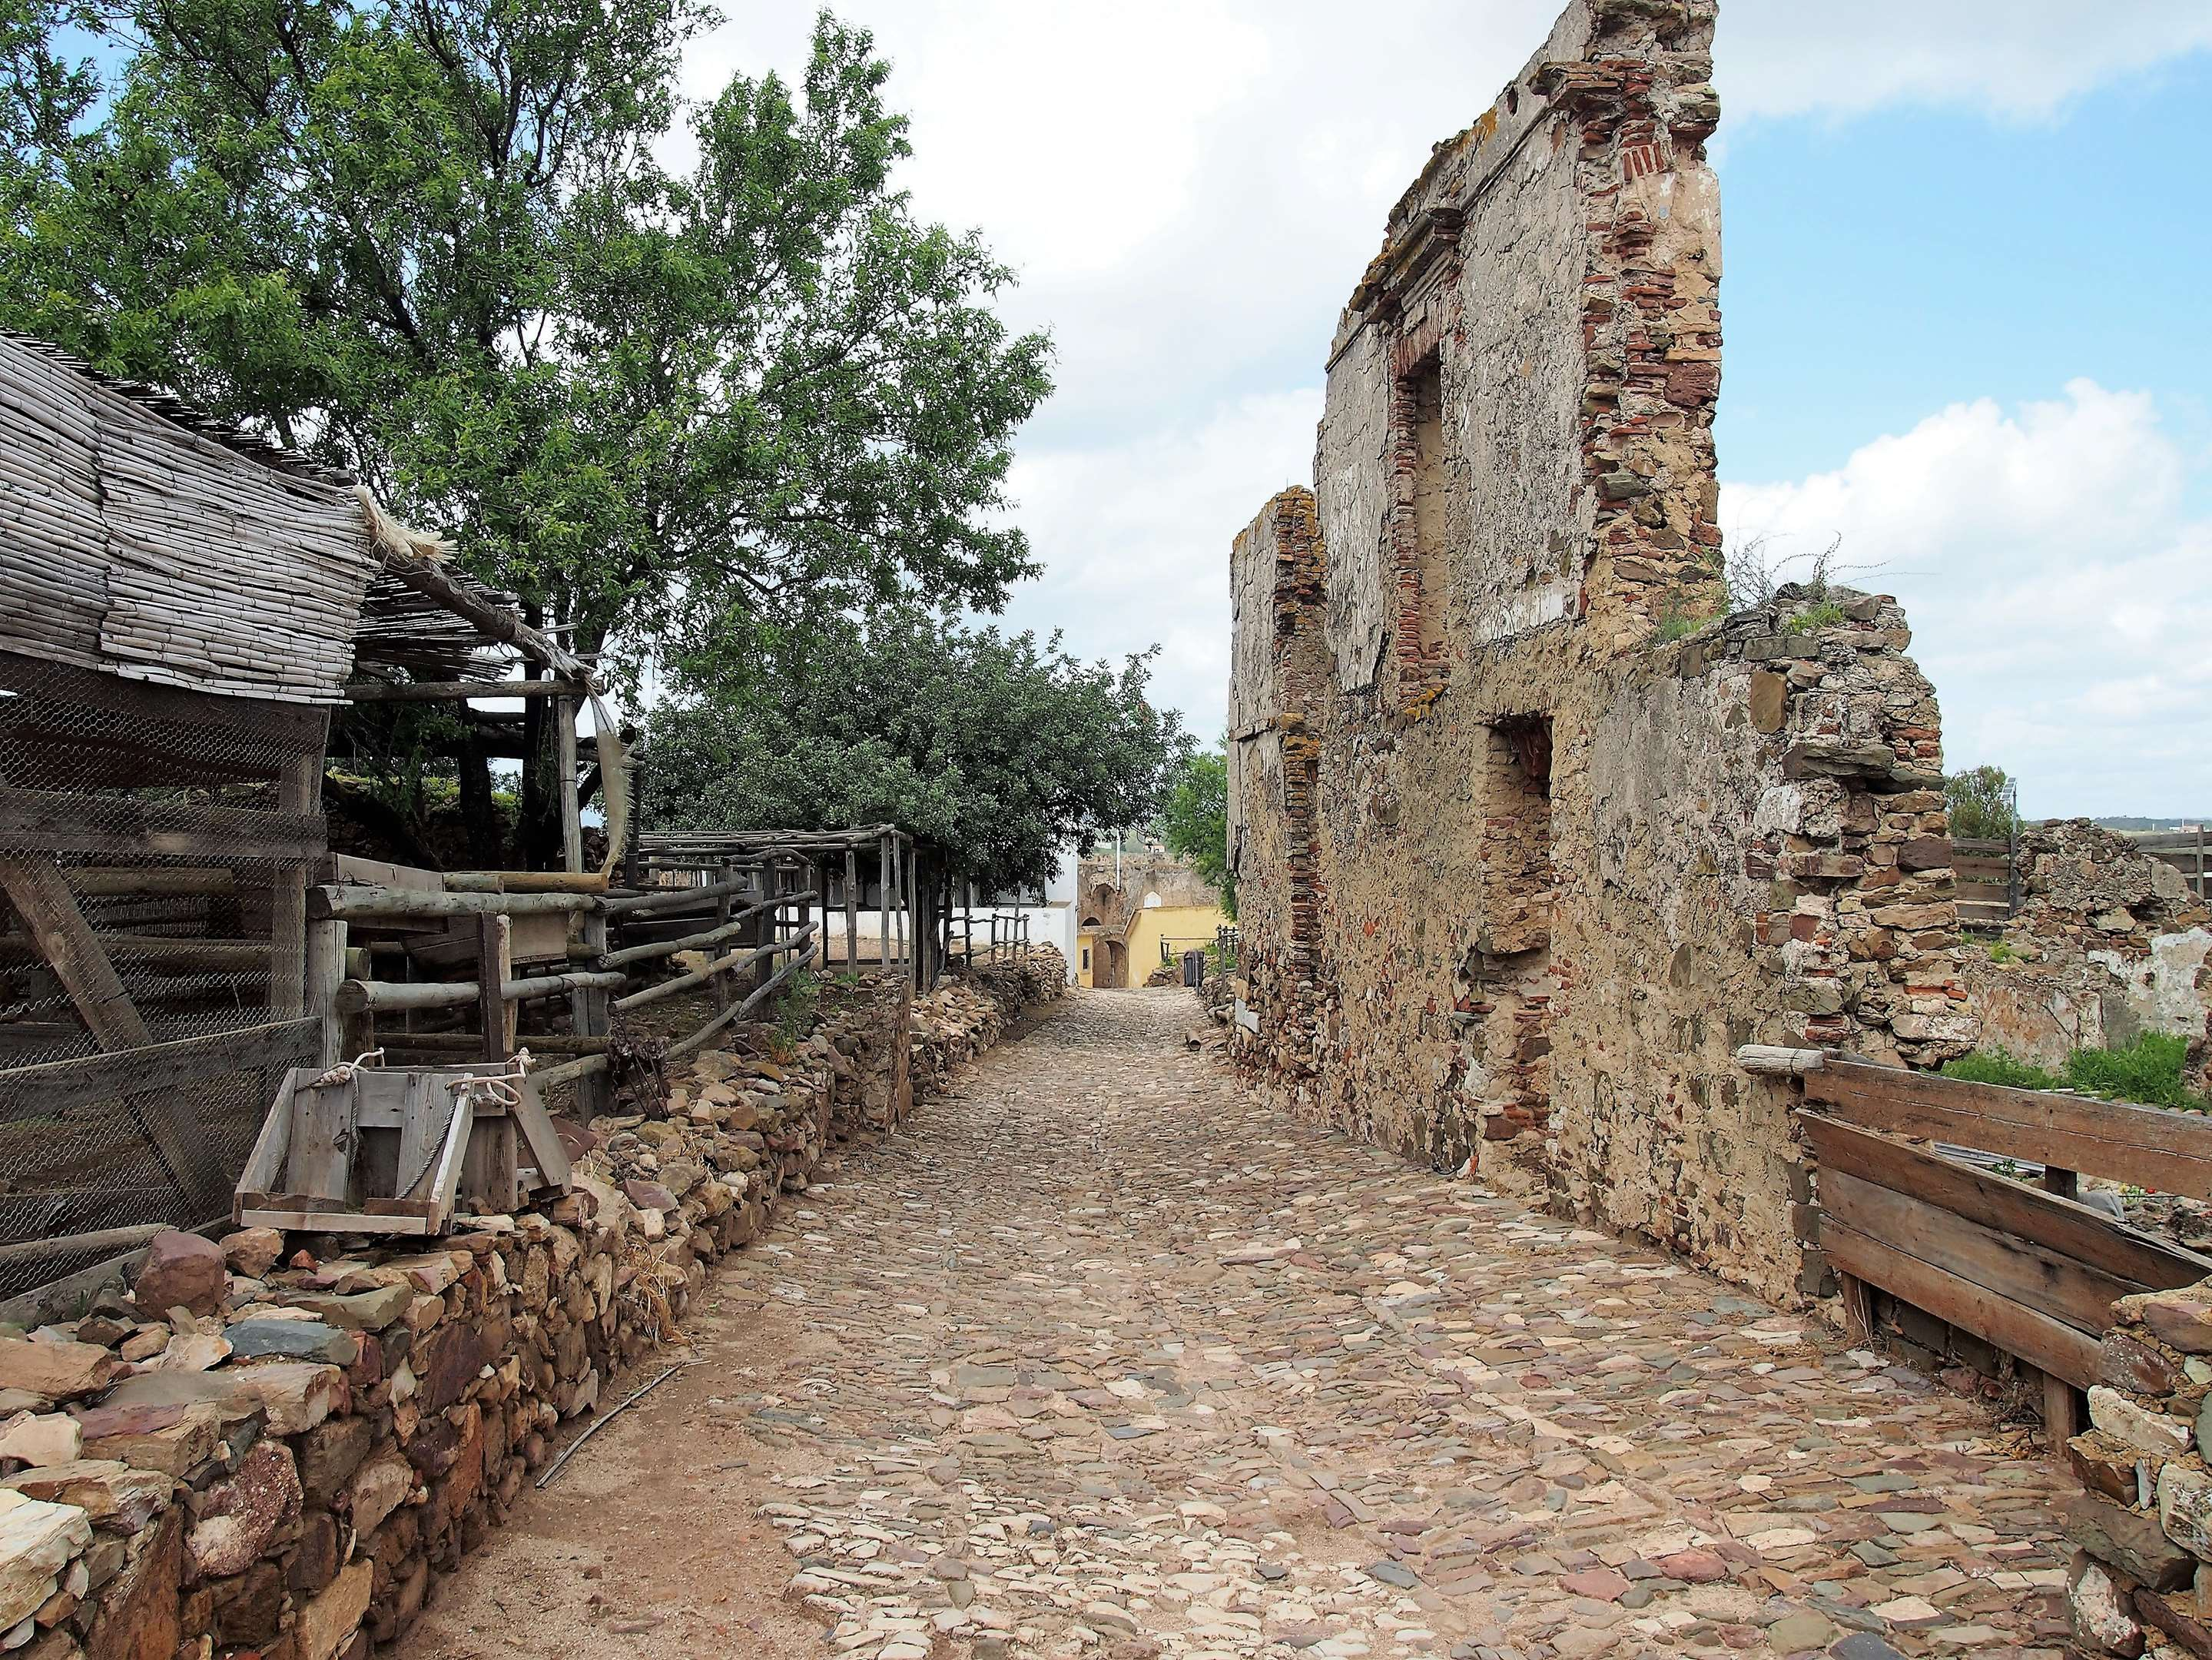 The remains of a road within the Castro Marim castle.